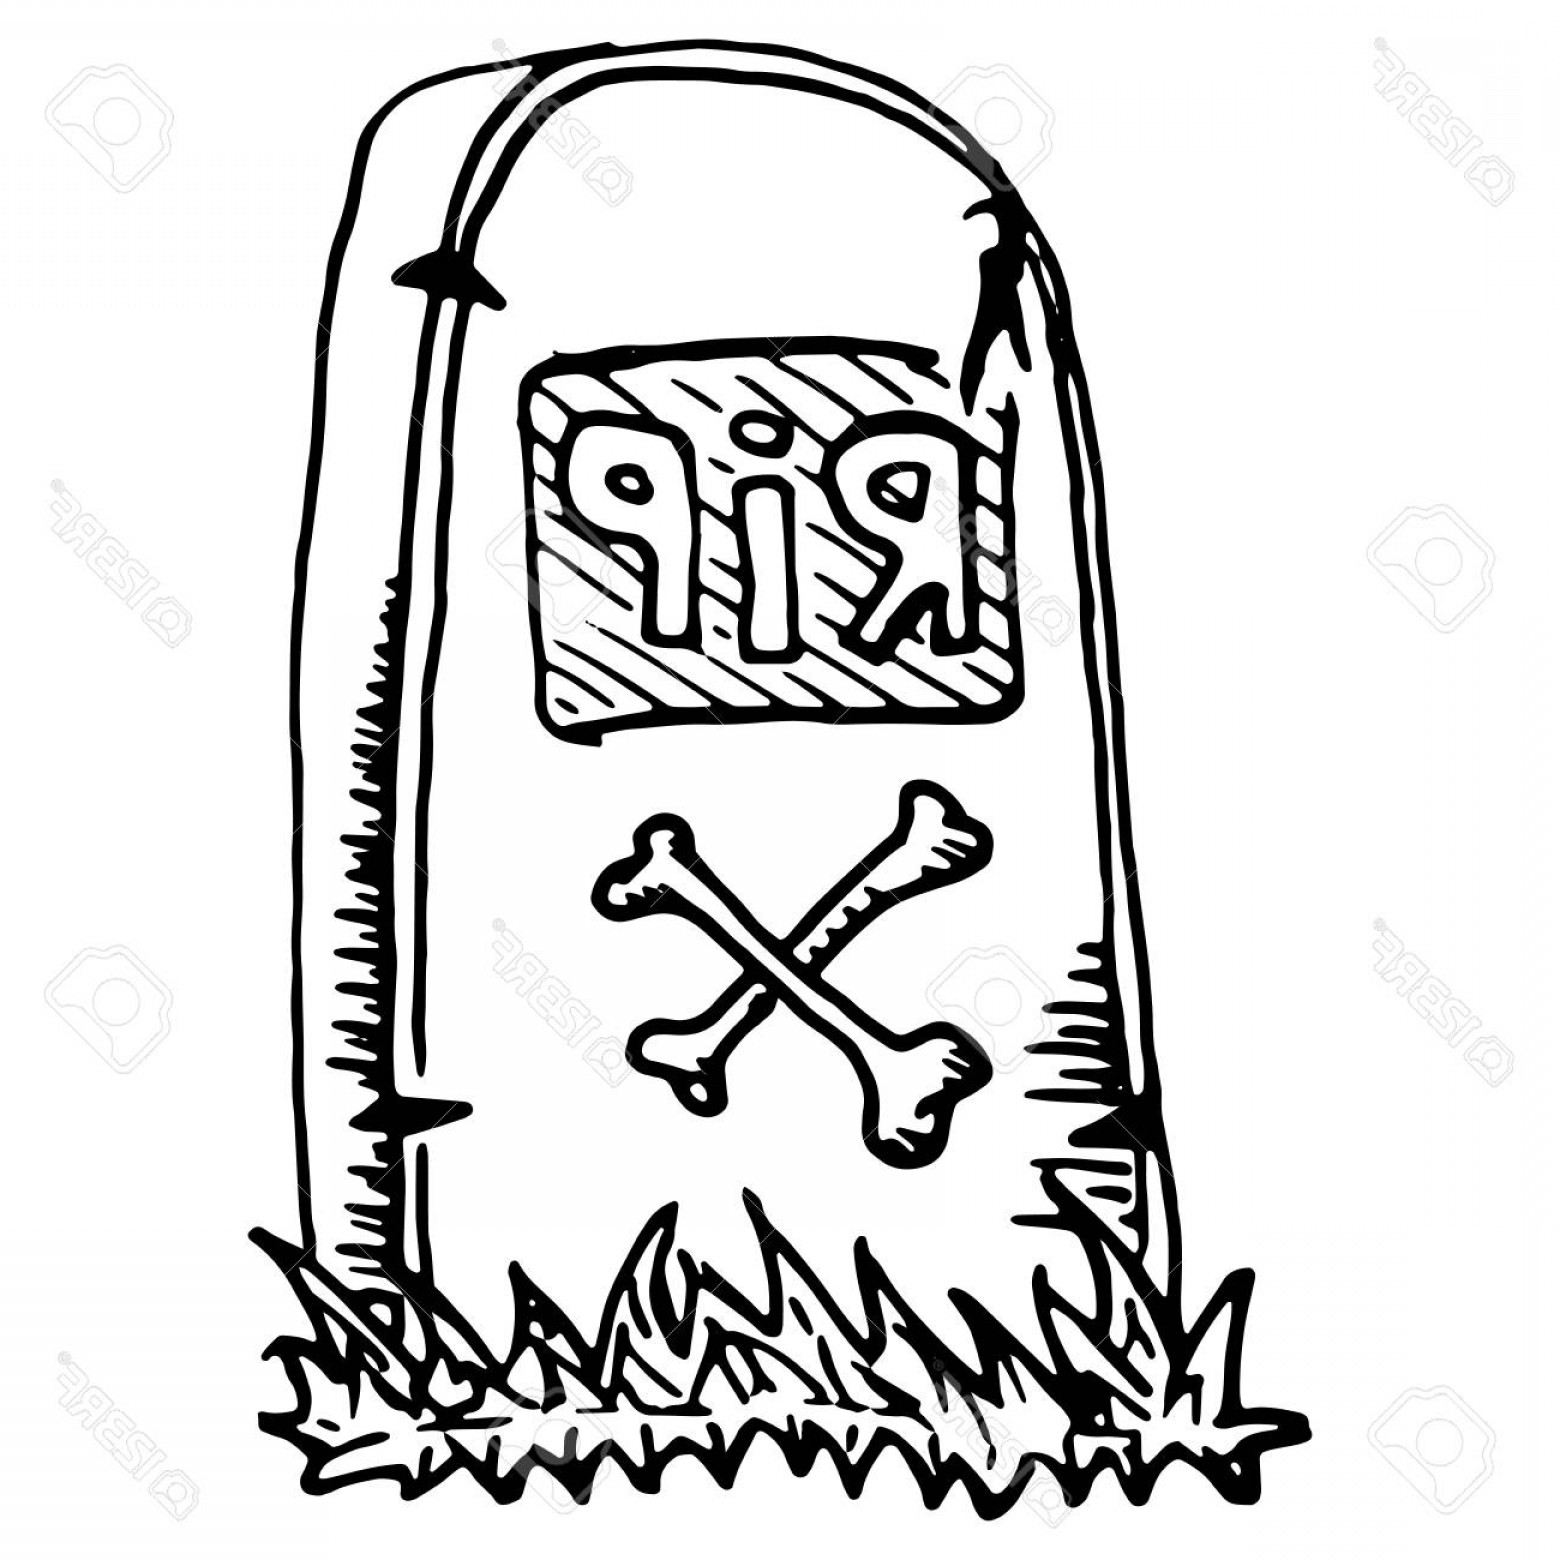 Rip Clip Art Vector: Photostock Vector Vector Image Of Tombstones In A Cemetery Tomb With The Inscription Rip Illustration Of A Gravestone